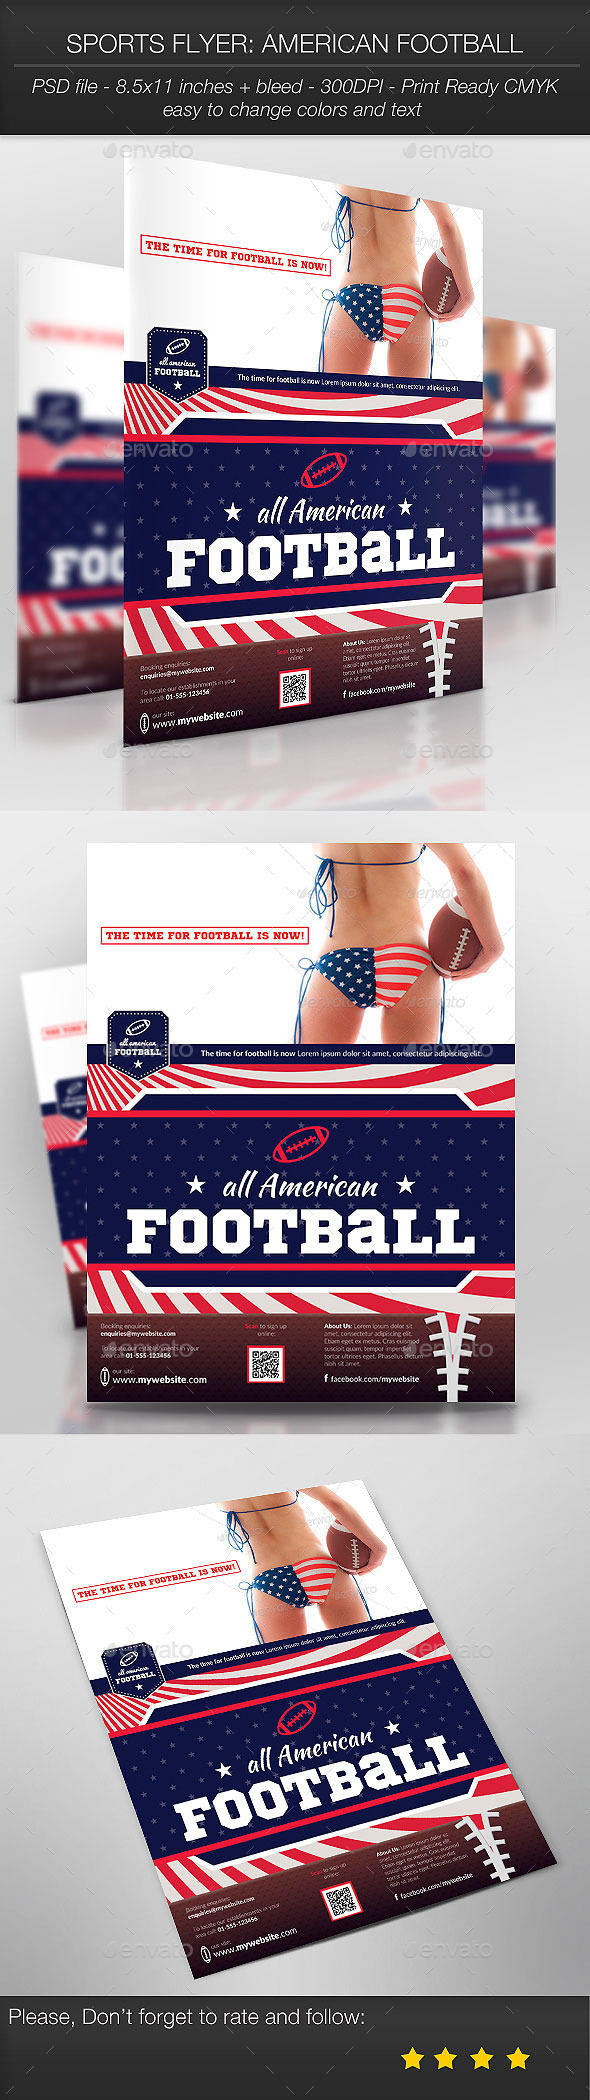 Sports Flyer: American Football - Sports Events